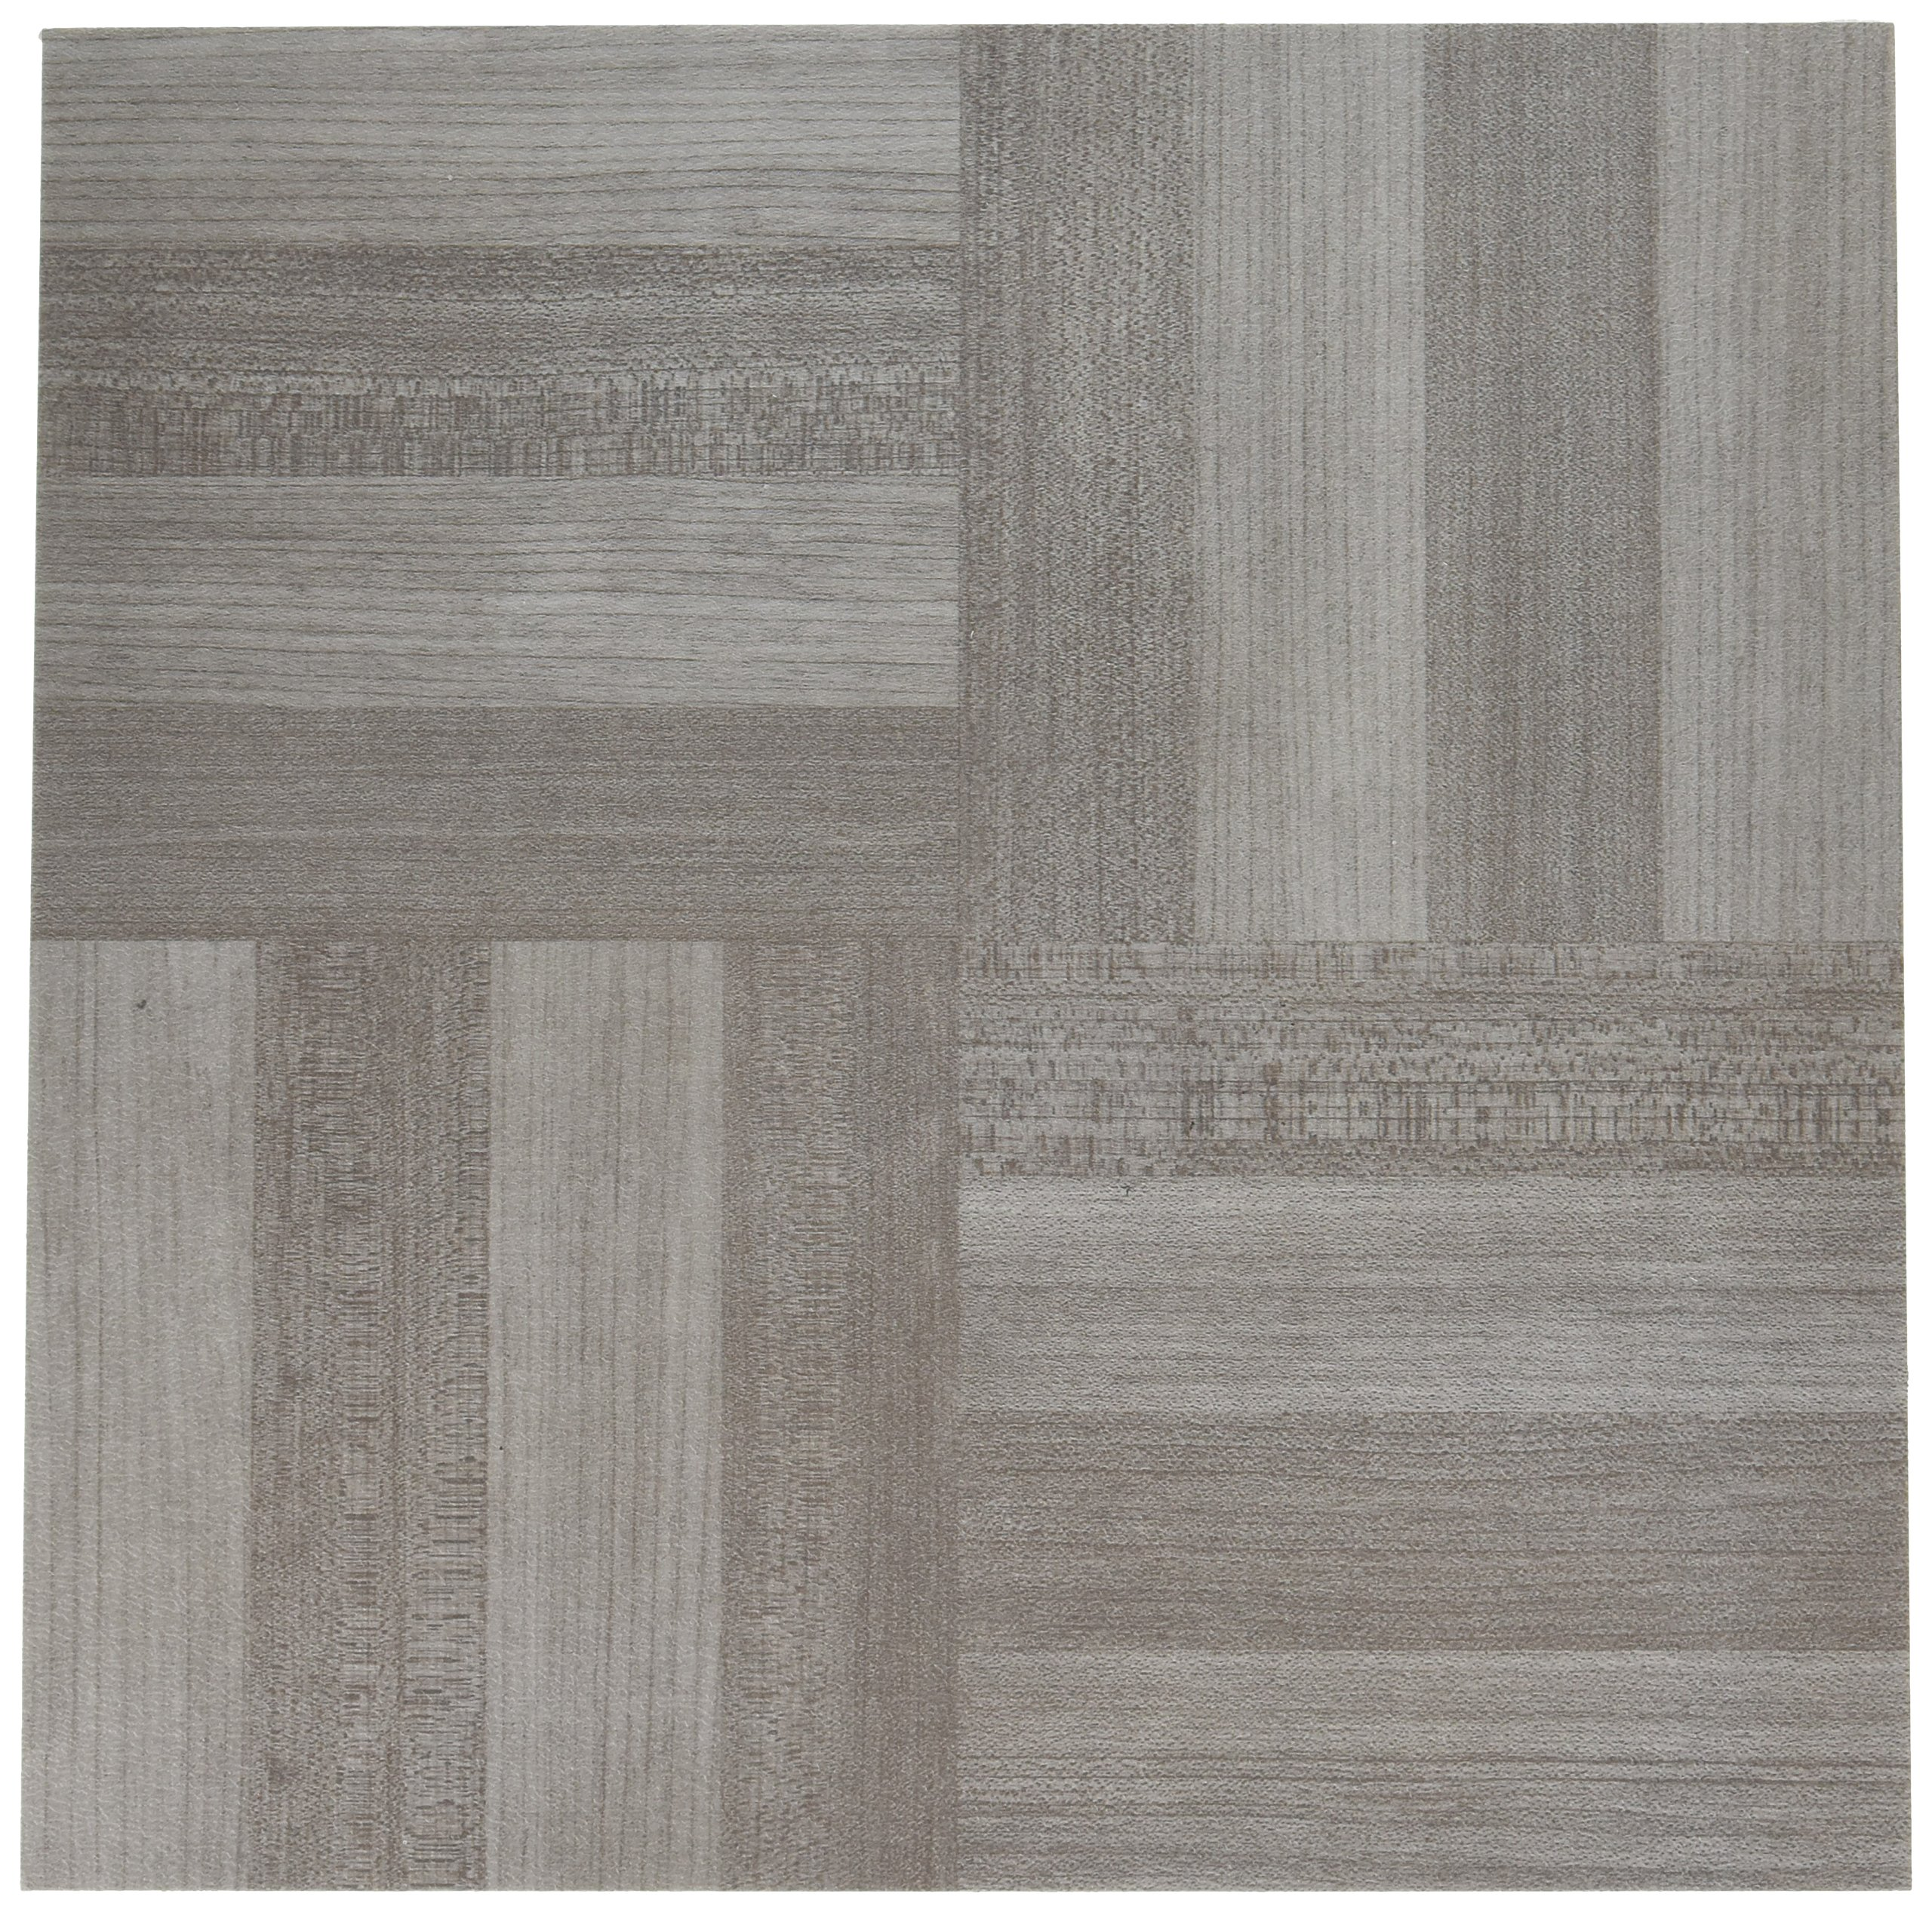 Achim Home Furnishings FTVWD23120 Nexus Self Adhesive 20 Vinyl Floor Tiles, 12'' x 12'', Ash Grey Wood, Piece by Achim Home Furnishings (Image #1)